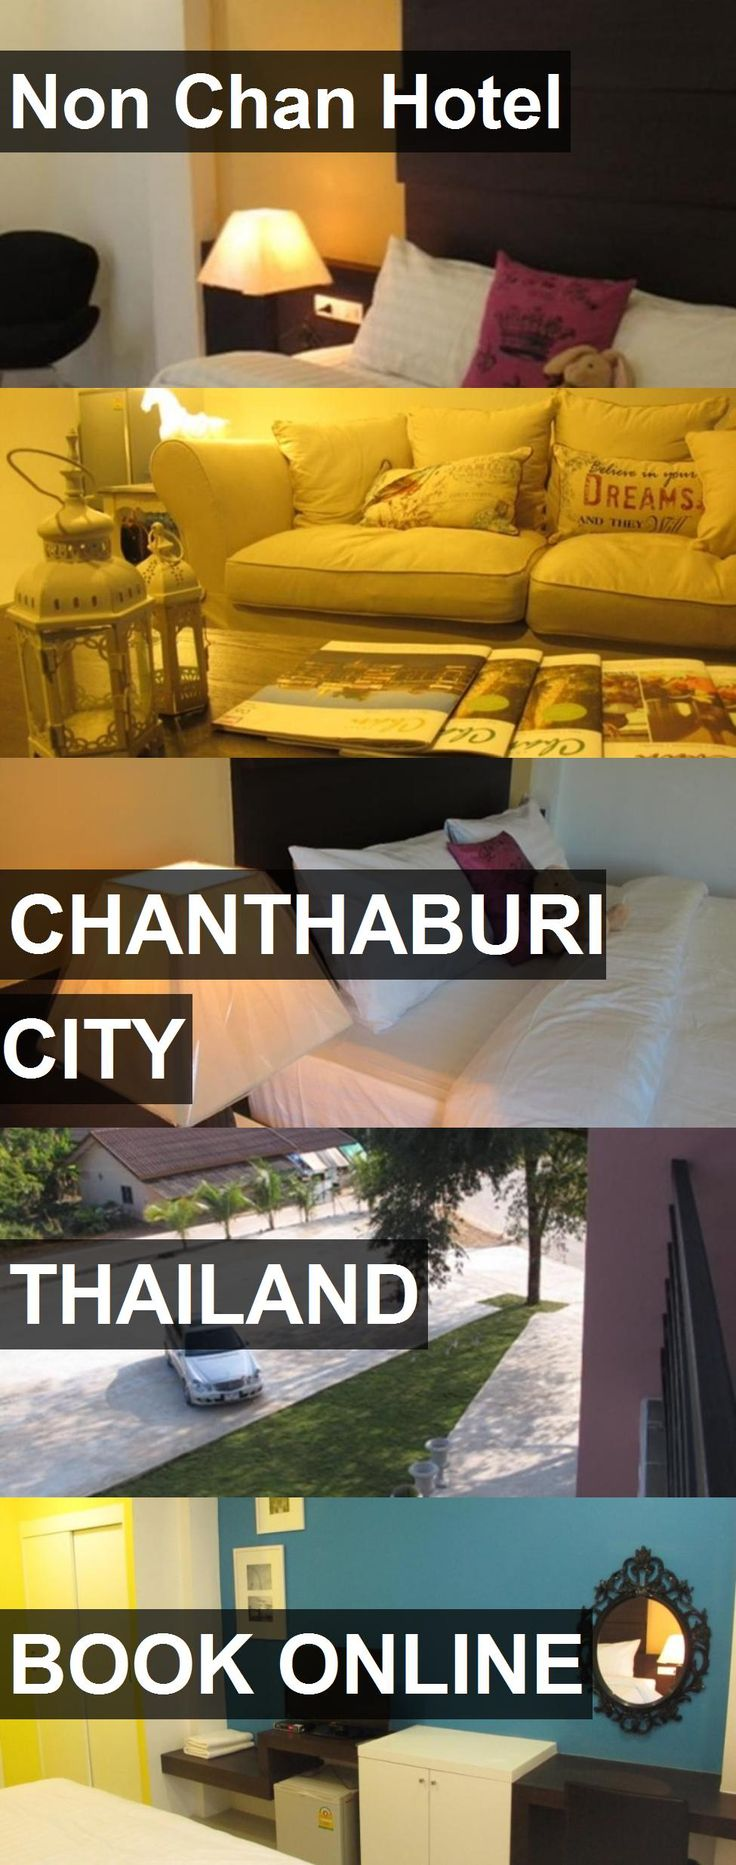 Non Chan Hotel in Chanthaburi City, Thailand. For more information, photos, reviews and best prices please follow the link. #Thailand #ChanthaburiCity #travel #vacation #hotel